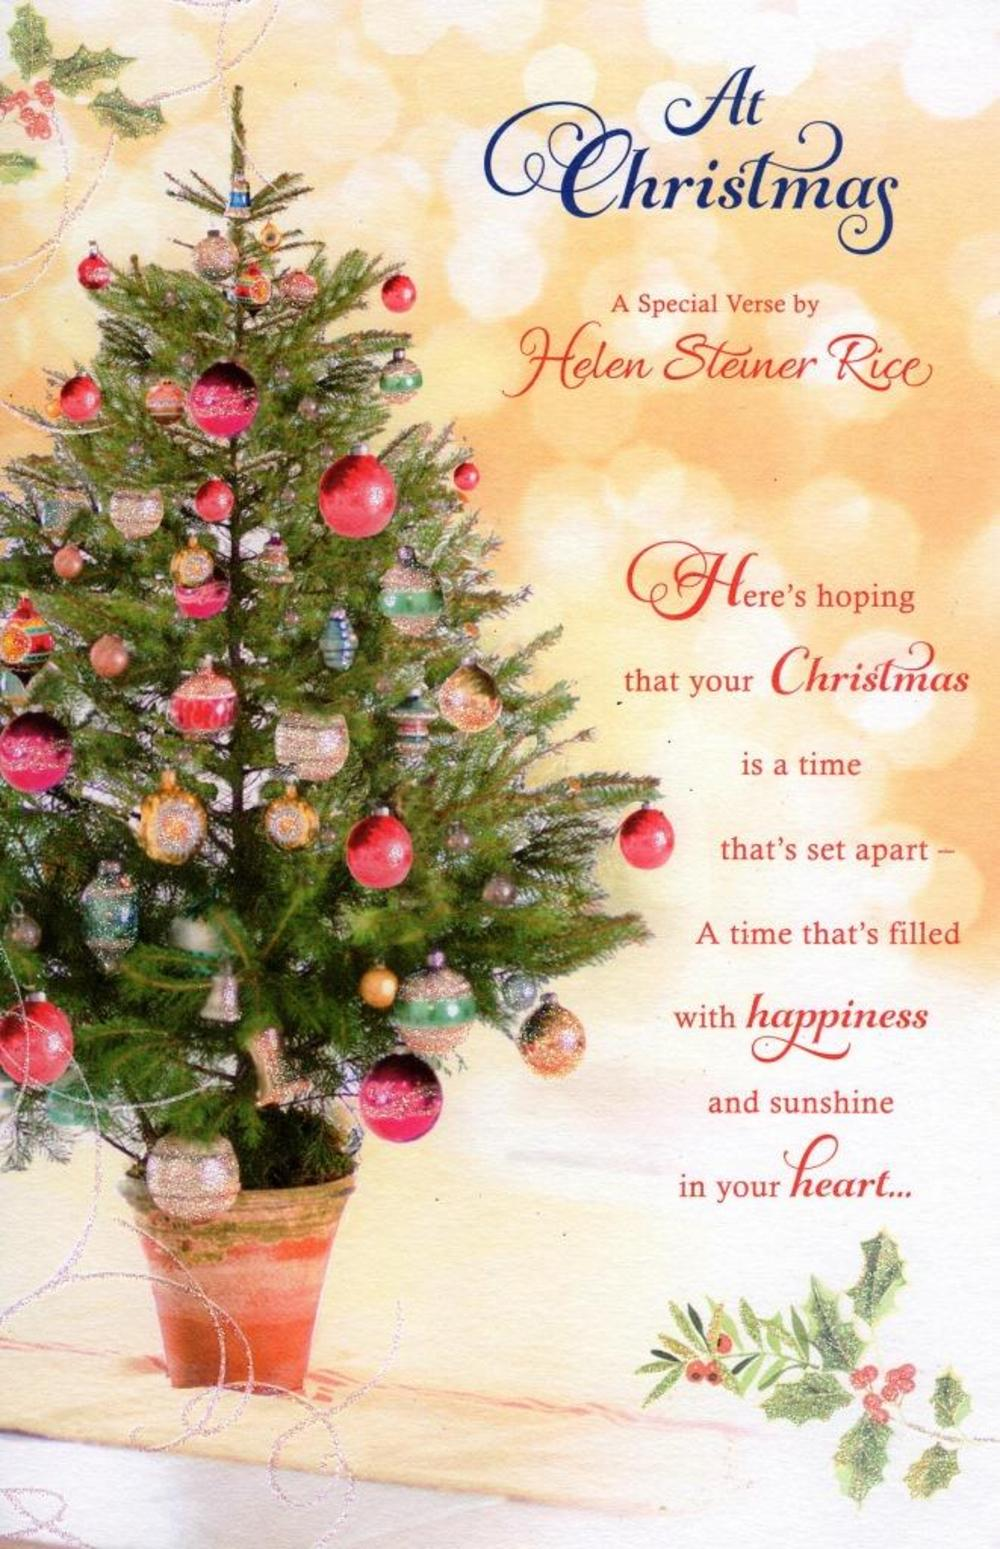 Helen steiner rice christmas greeting card cards love kates helen steiner rice christmas greeting card m4hsunfo